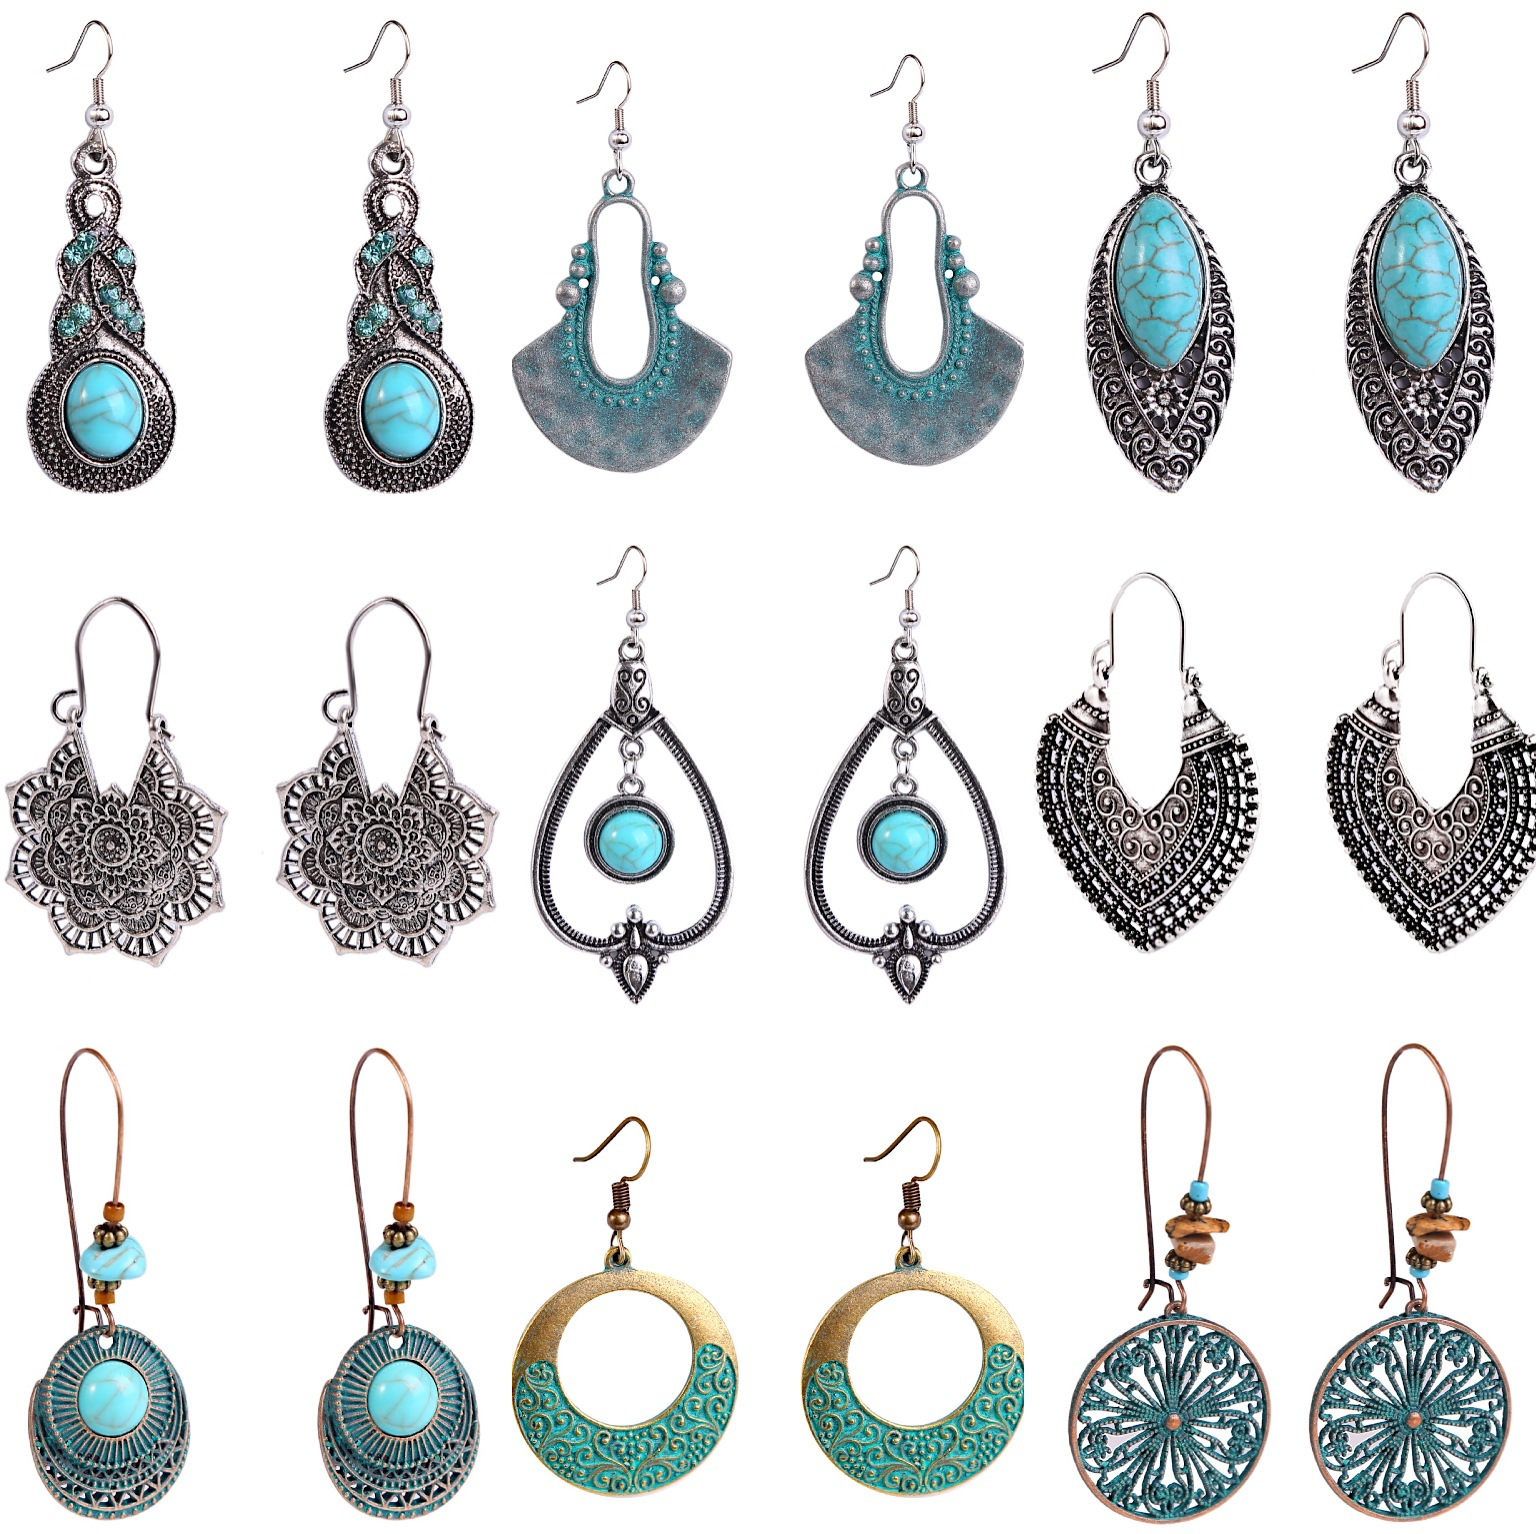 Fashion European and American bohemian earrings with vintage ethnic retro love earrings for charming women lady gifts